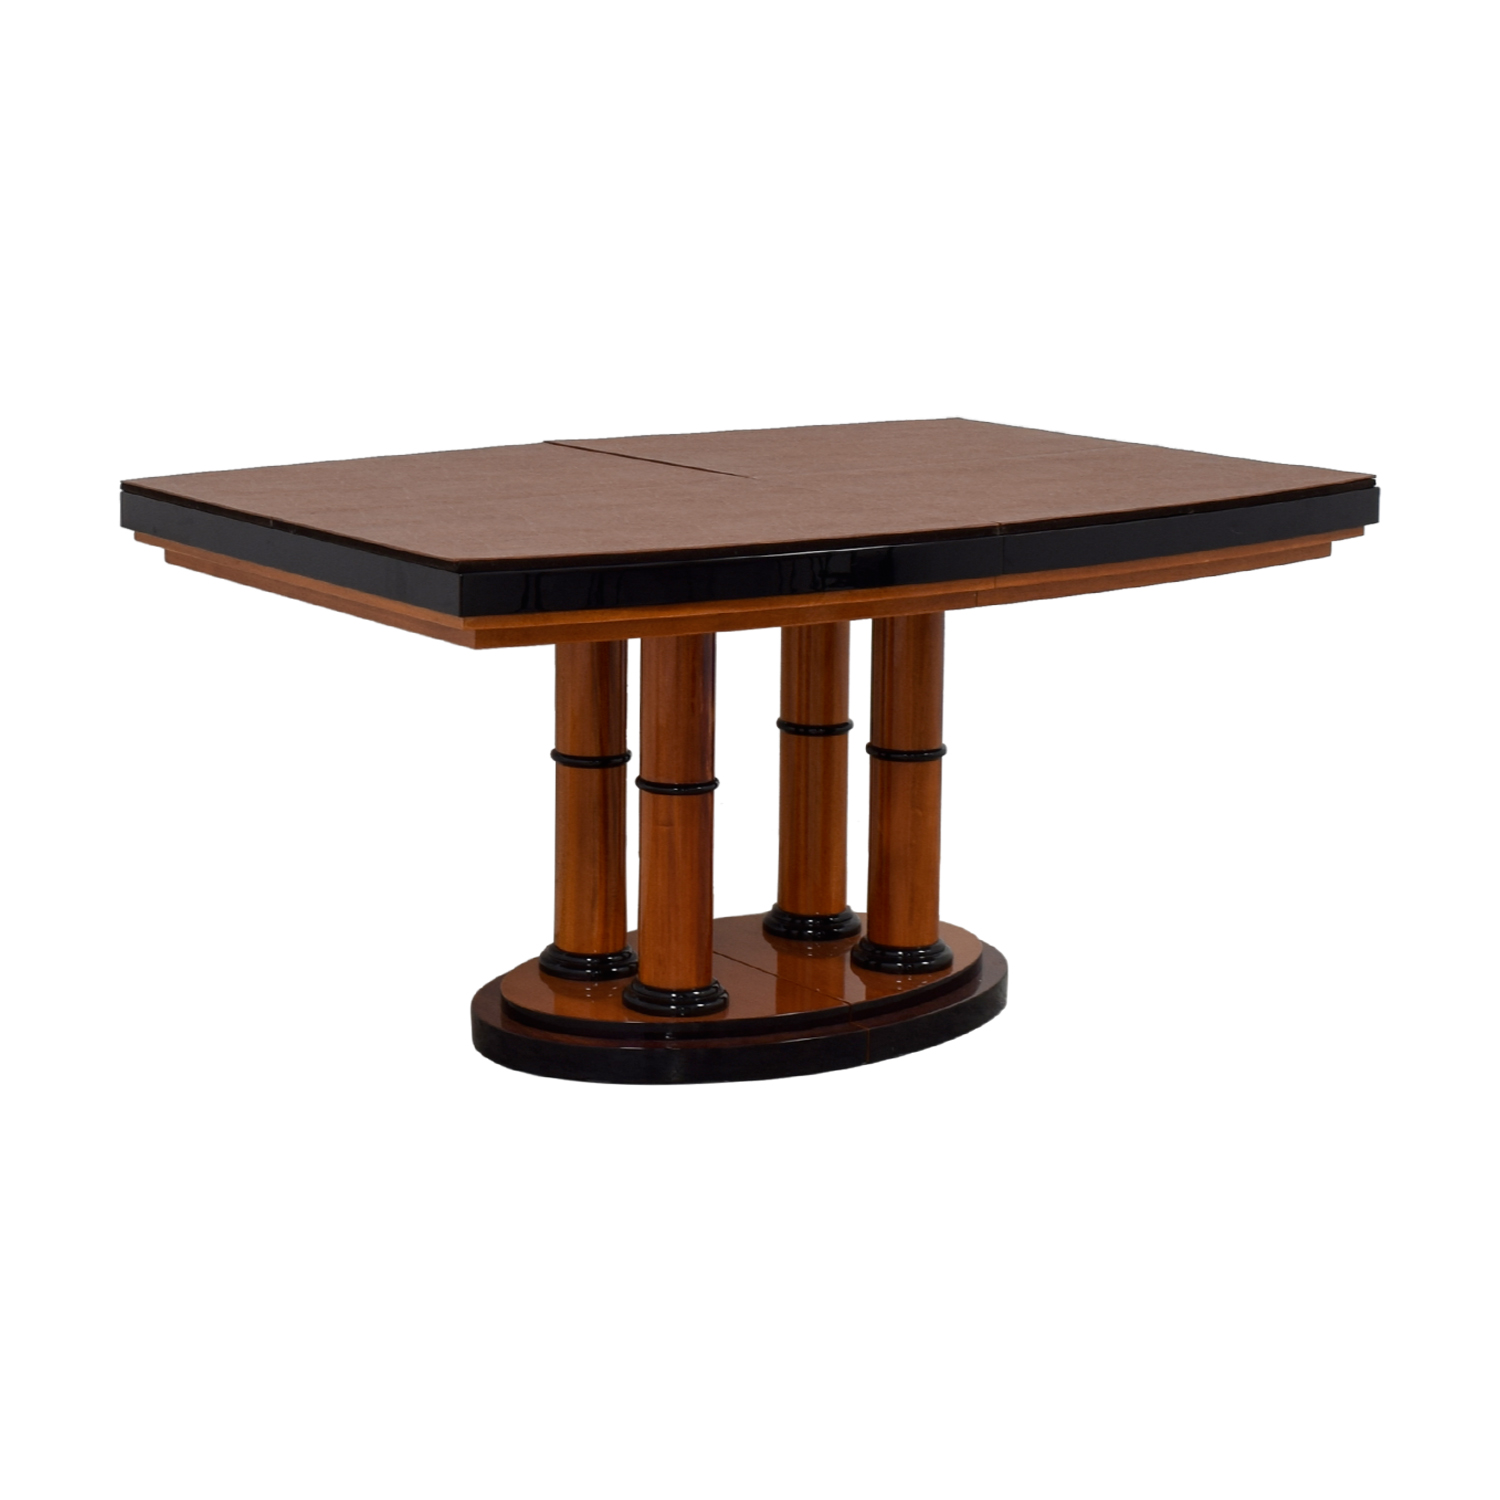 ... Shop Manhattan Cabinetry Custom Expandable Dining Table Manhattan  Cabinetry ...